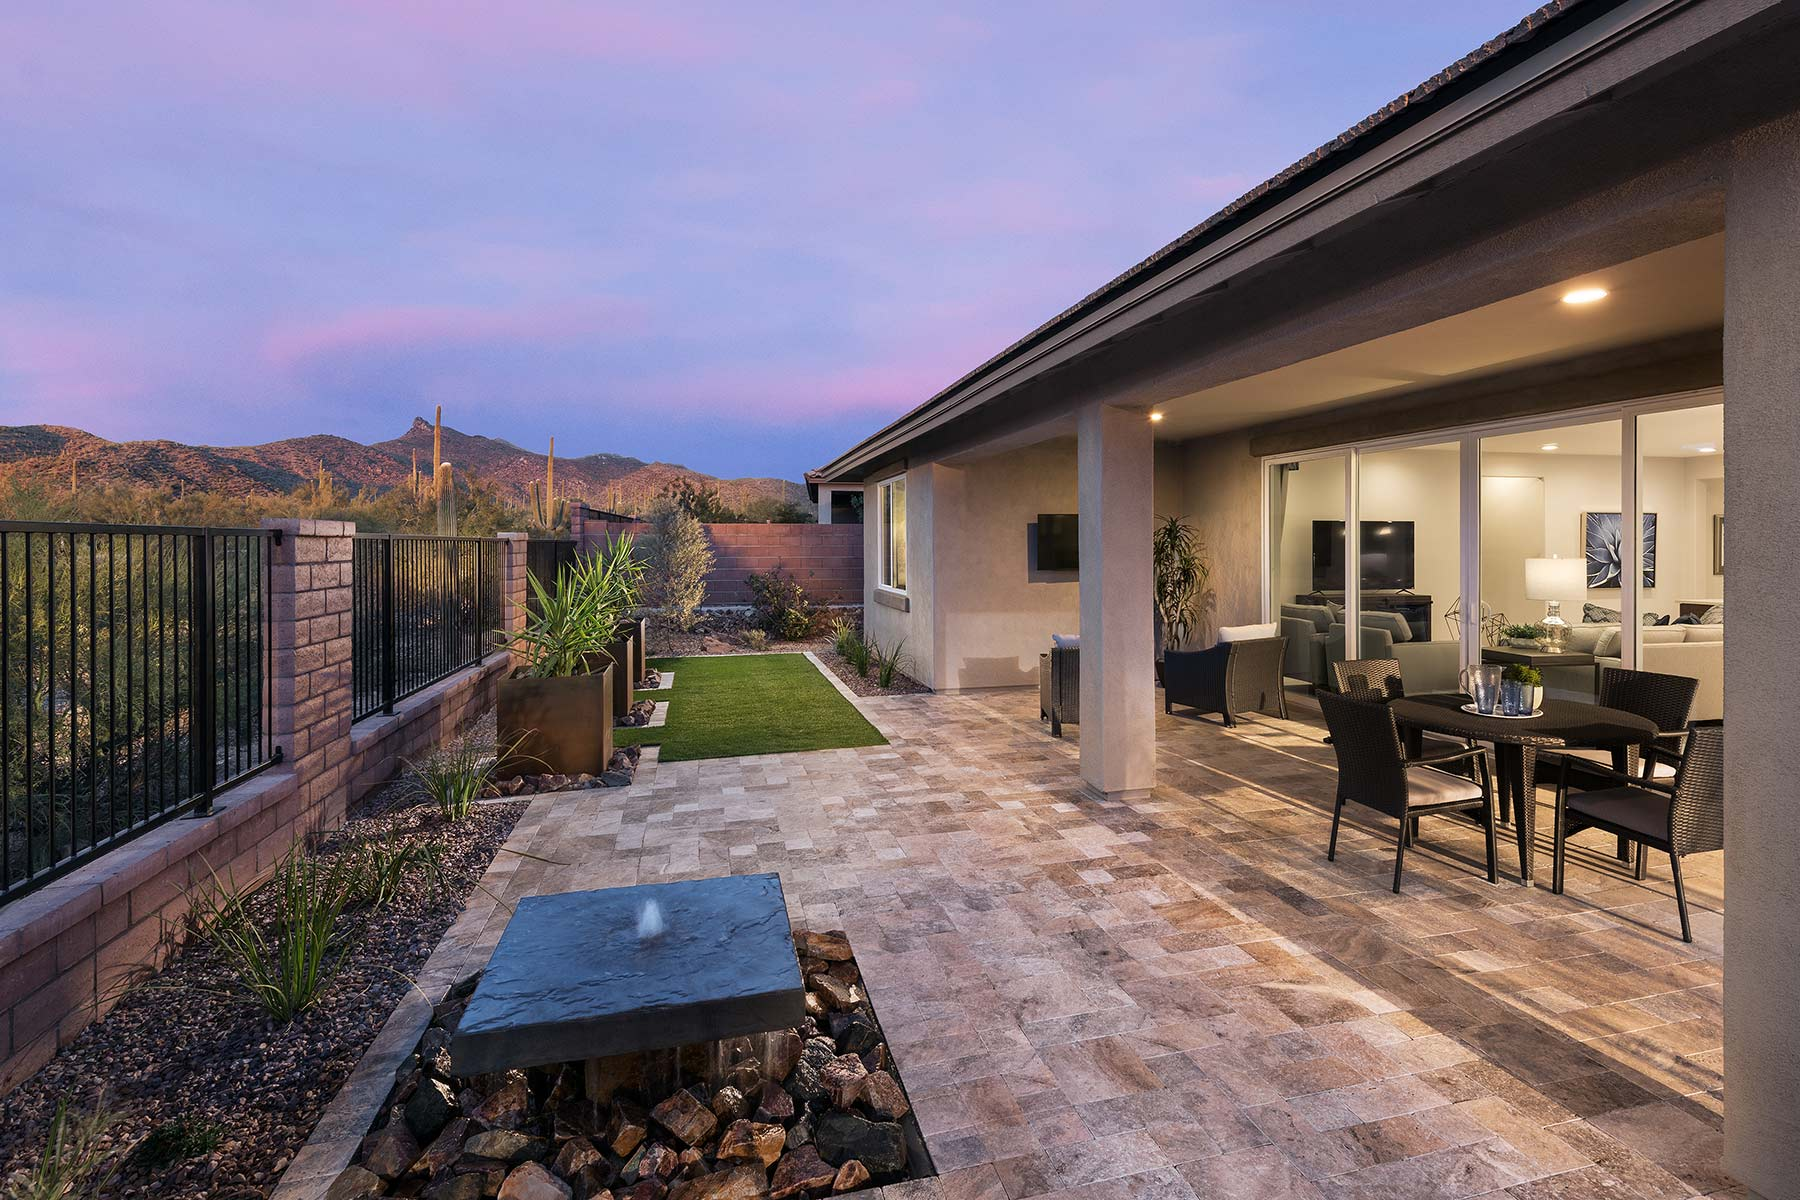 Sycamore Plan Exterior Others at Dove Mountain in Marana Arizona by Mattamy Homes